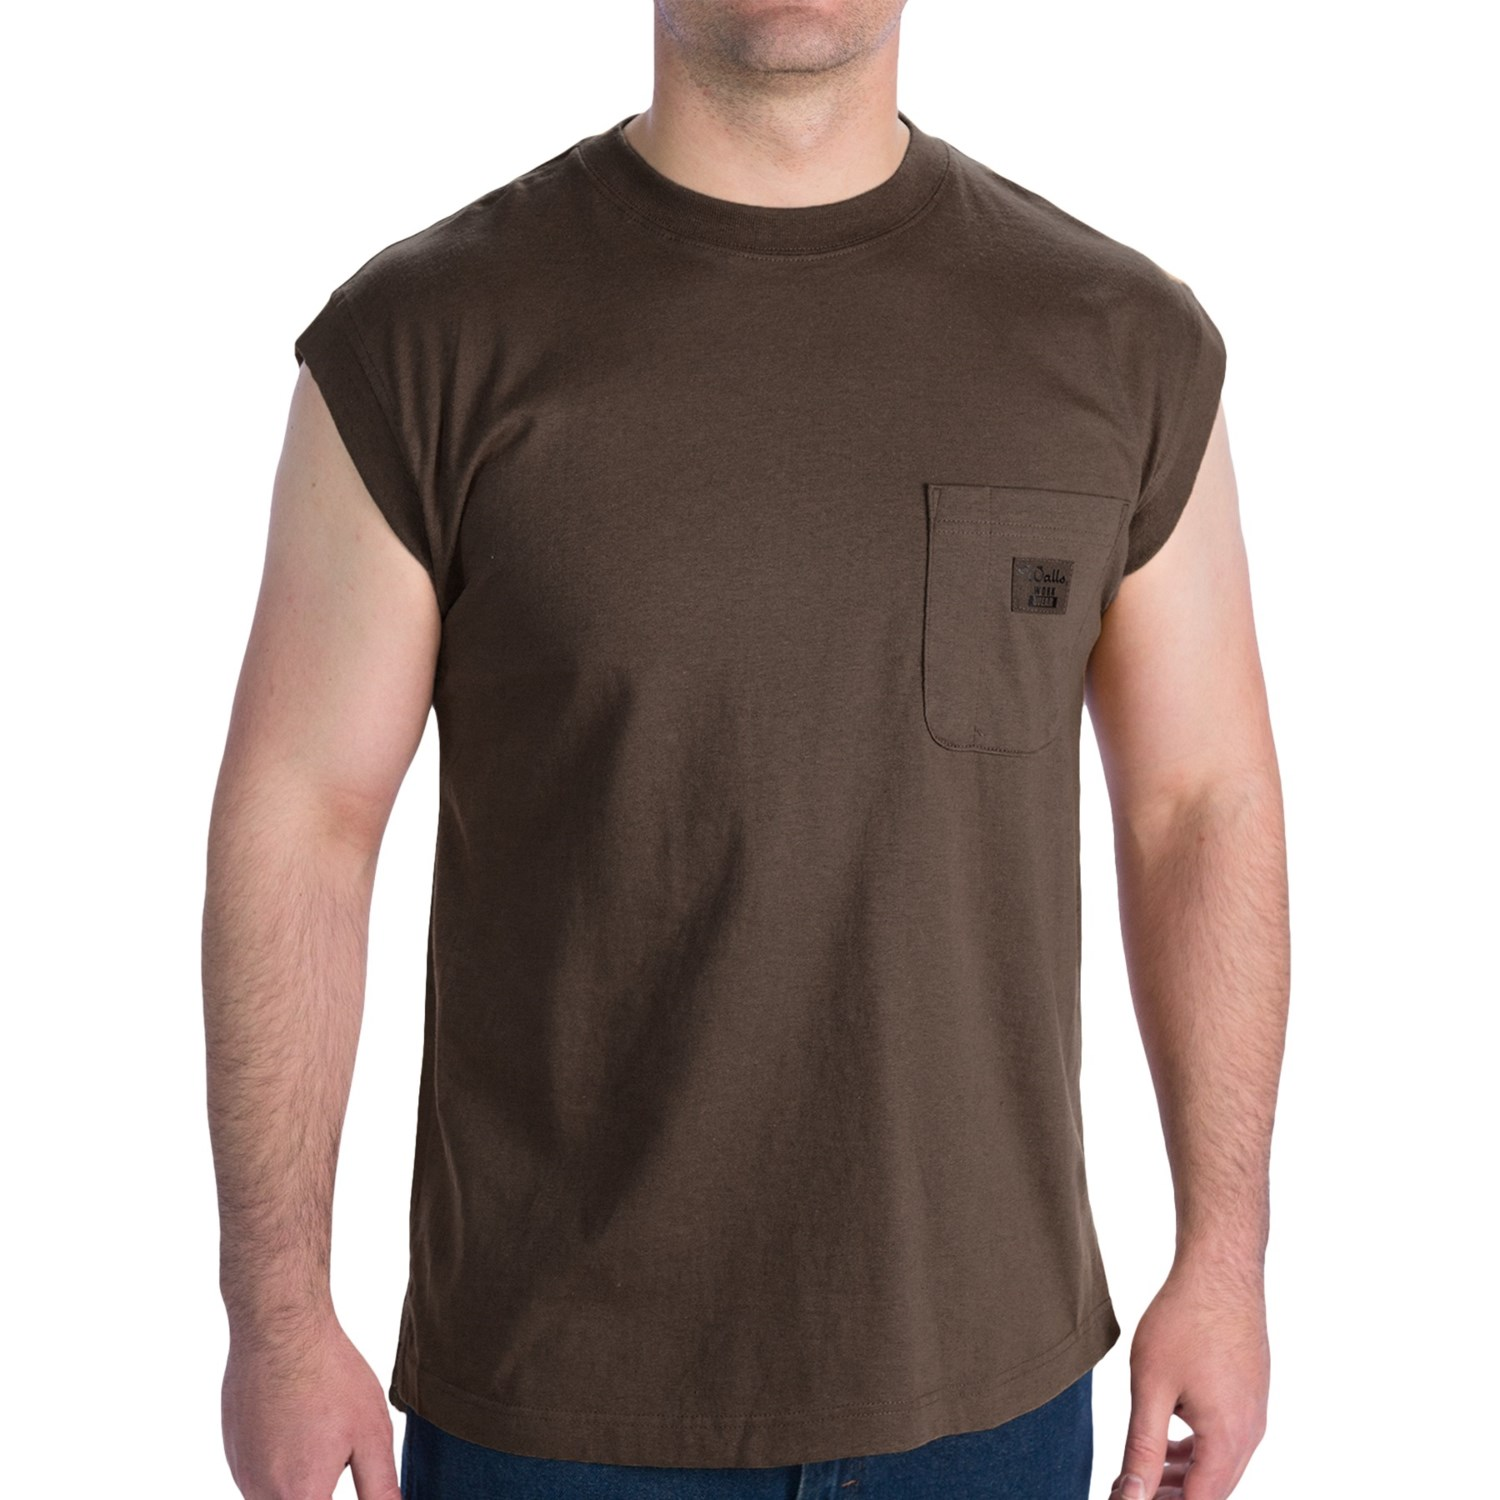 Description: Fruit of The Loom % Cotton Pocket T-Shirt. Fabric is 5oz pre-shrunk, lighter weight cotton. 5-point pocket on left chest. (Note: Ash is 98% cotton, 2% polyester; Athletic Heather is.